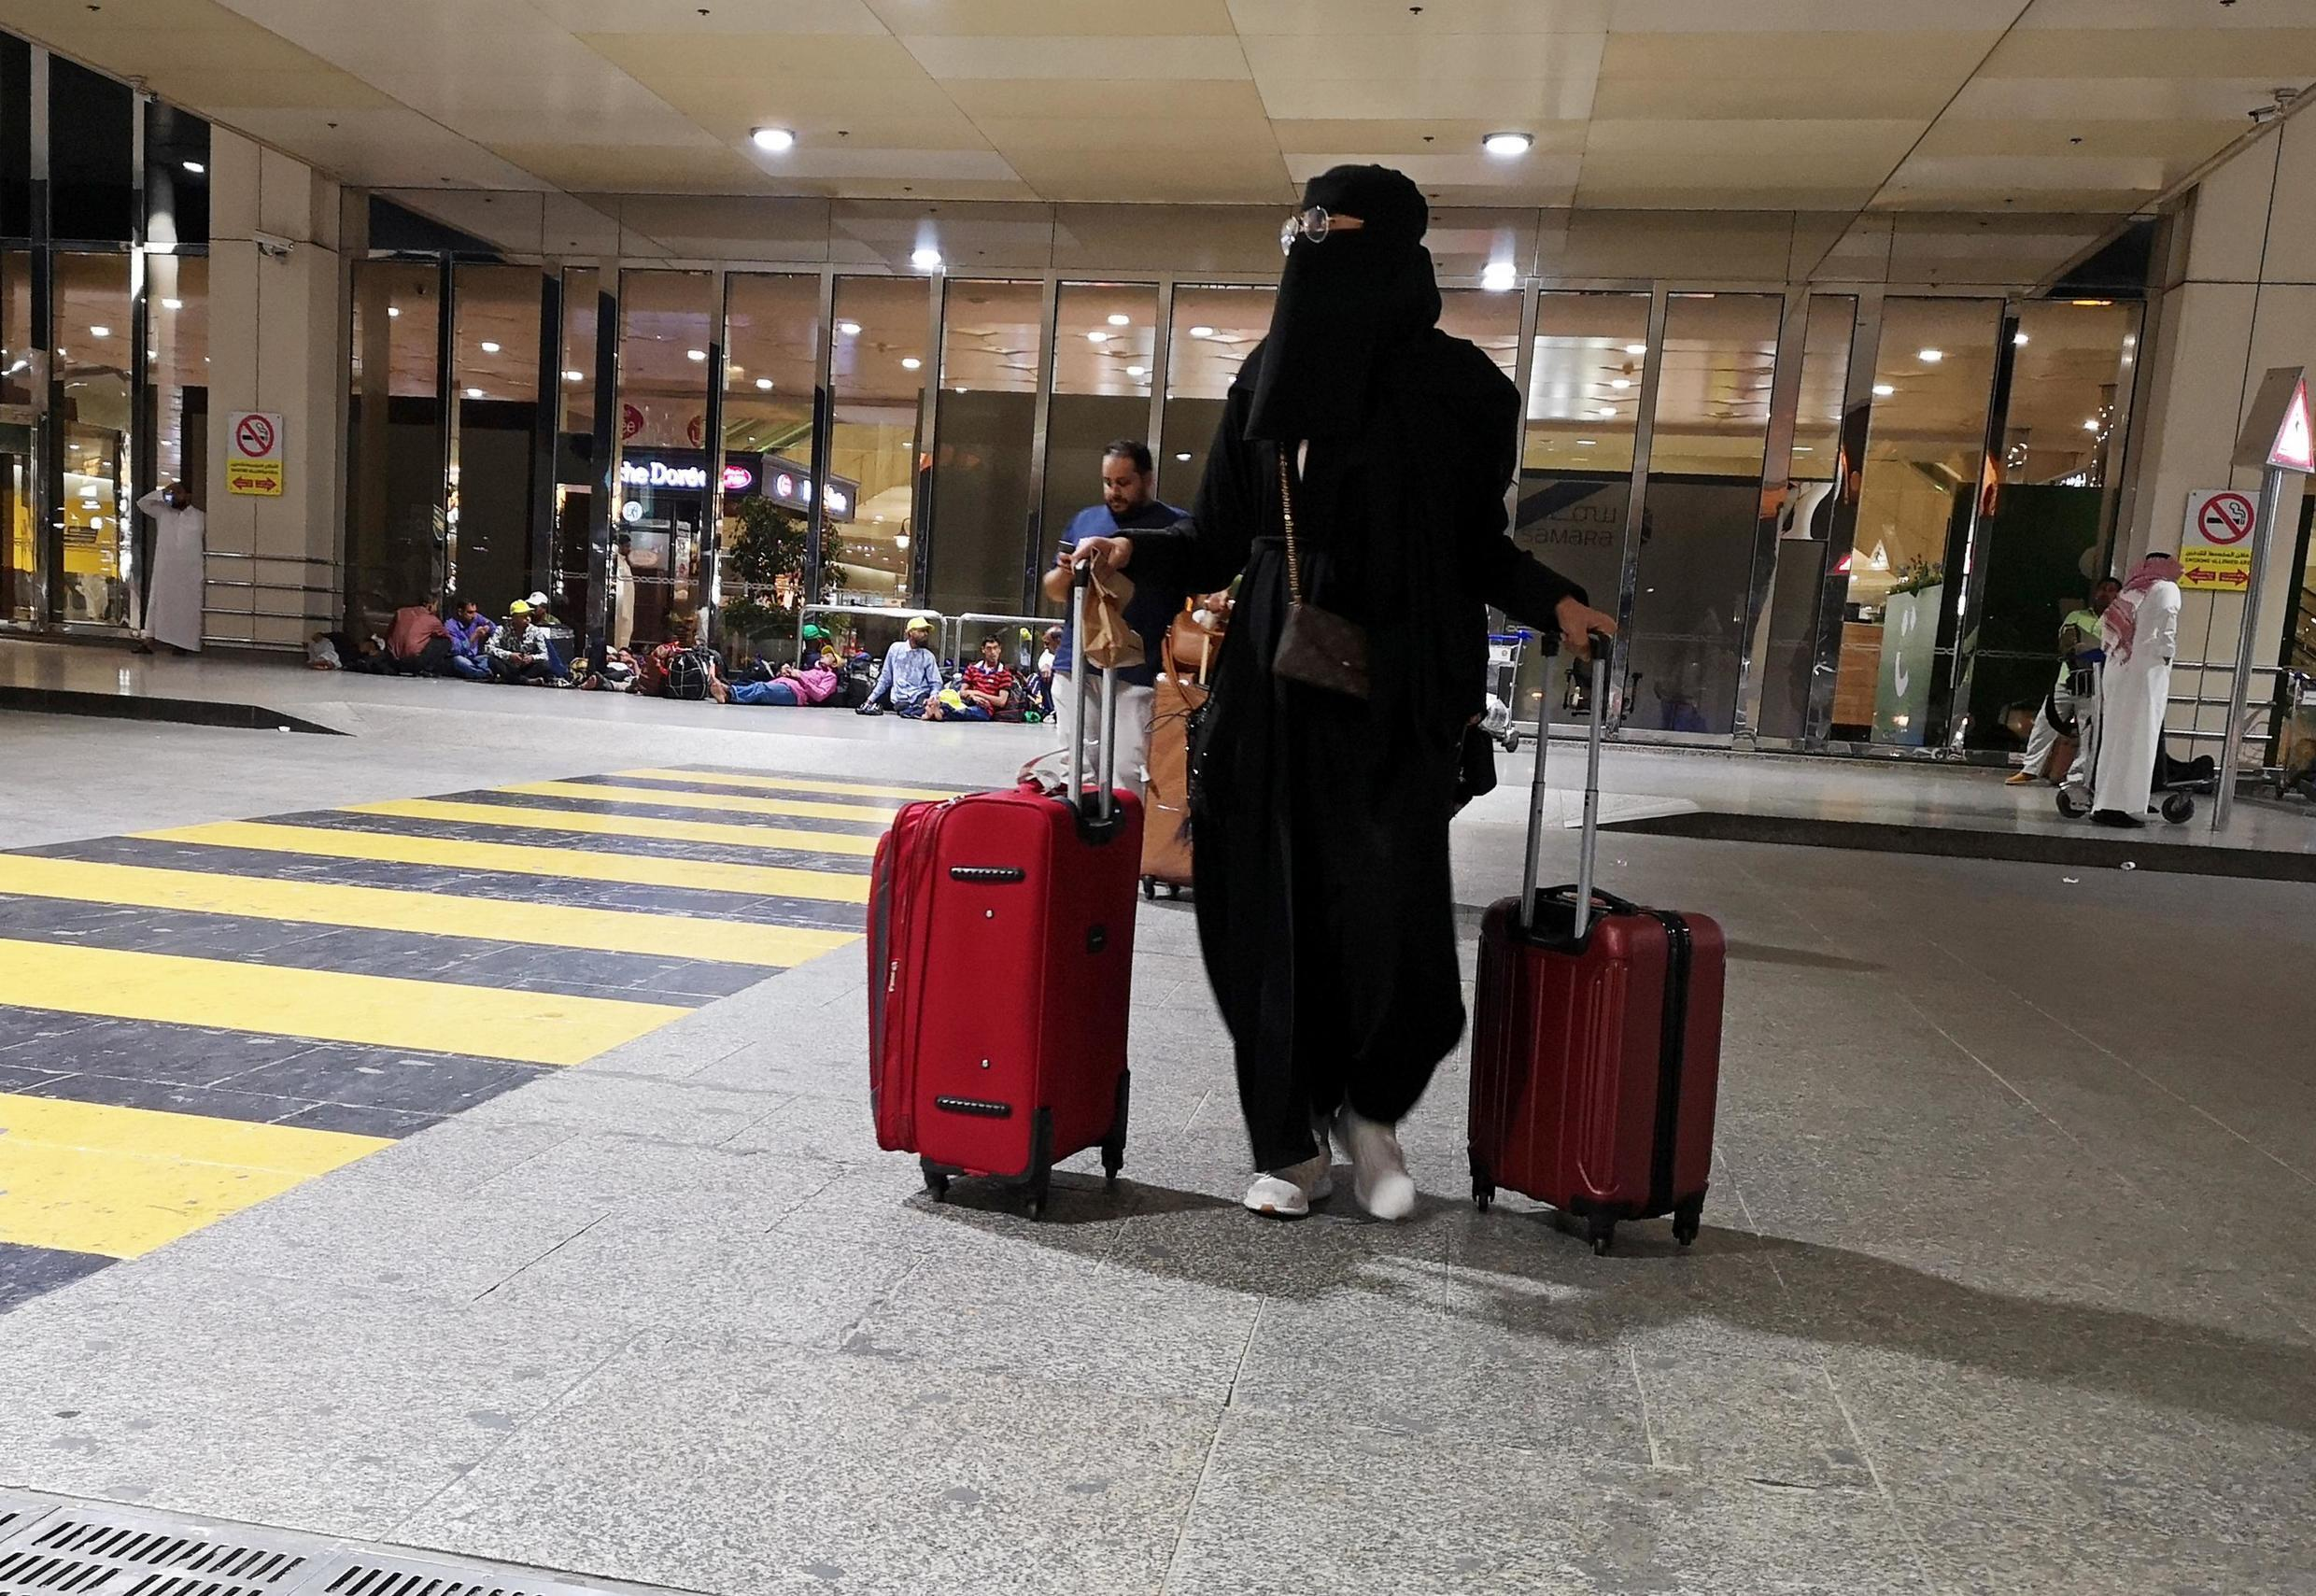 A Saudi woman walks with her luggage as she arrives at King Fahd International Airport in Dammam, Saudi Arabia, August 5, 2019.